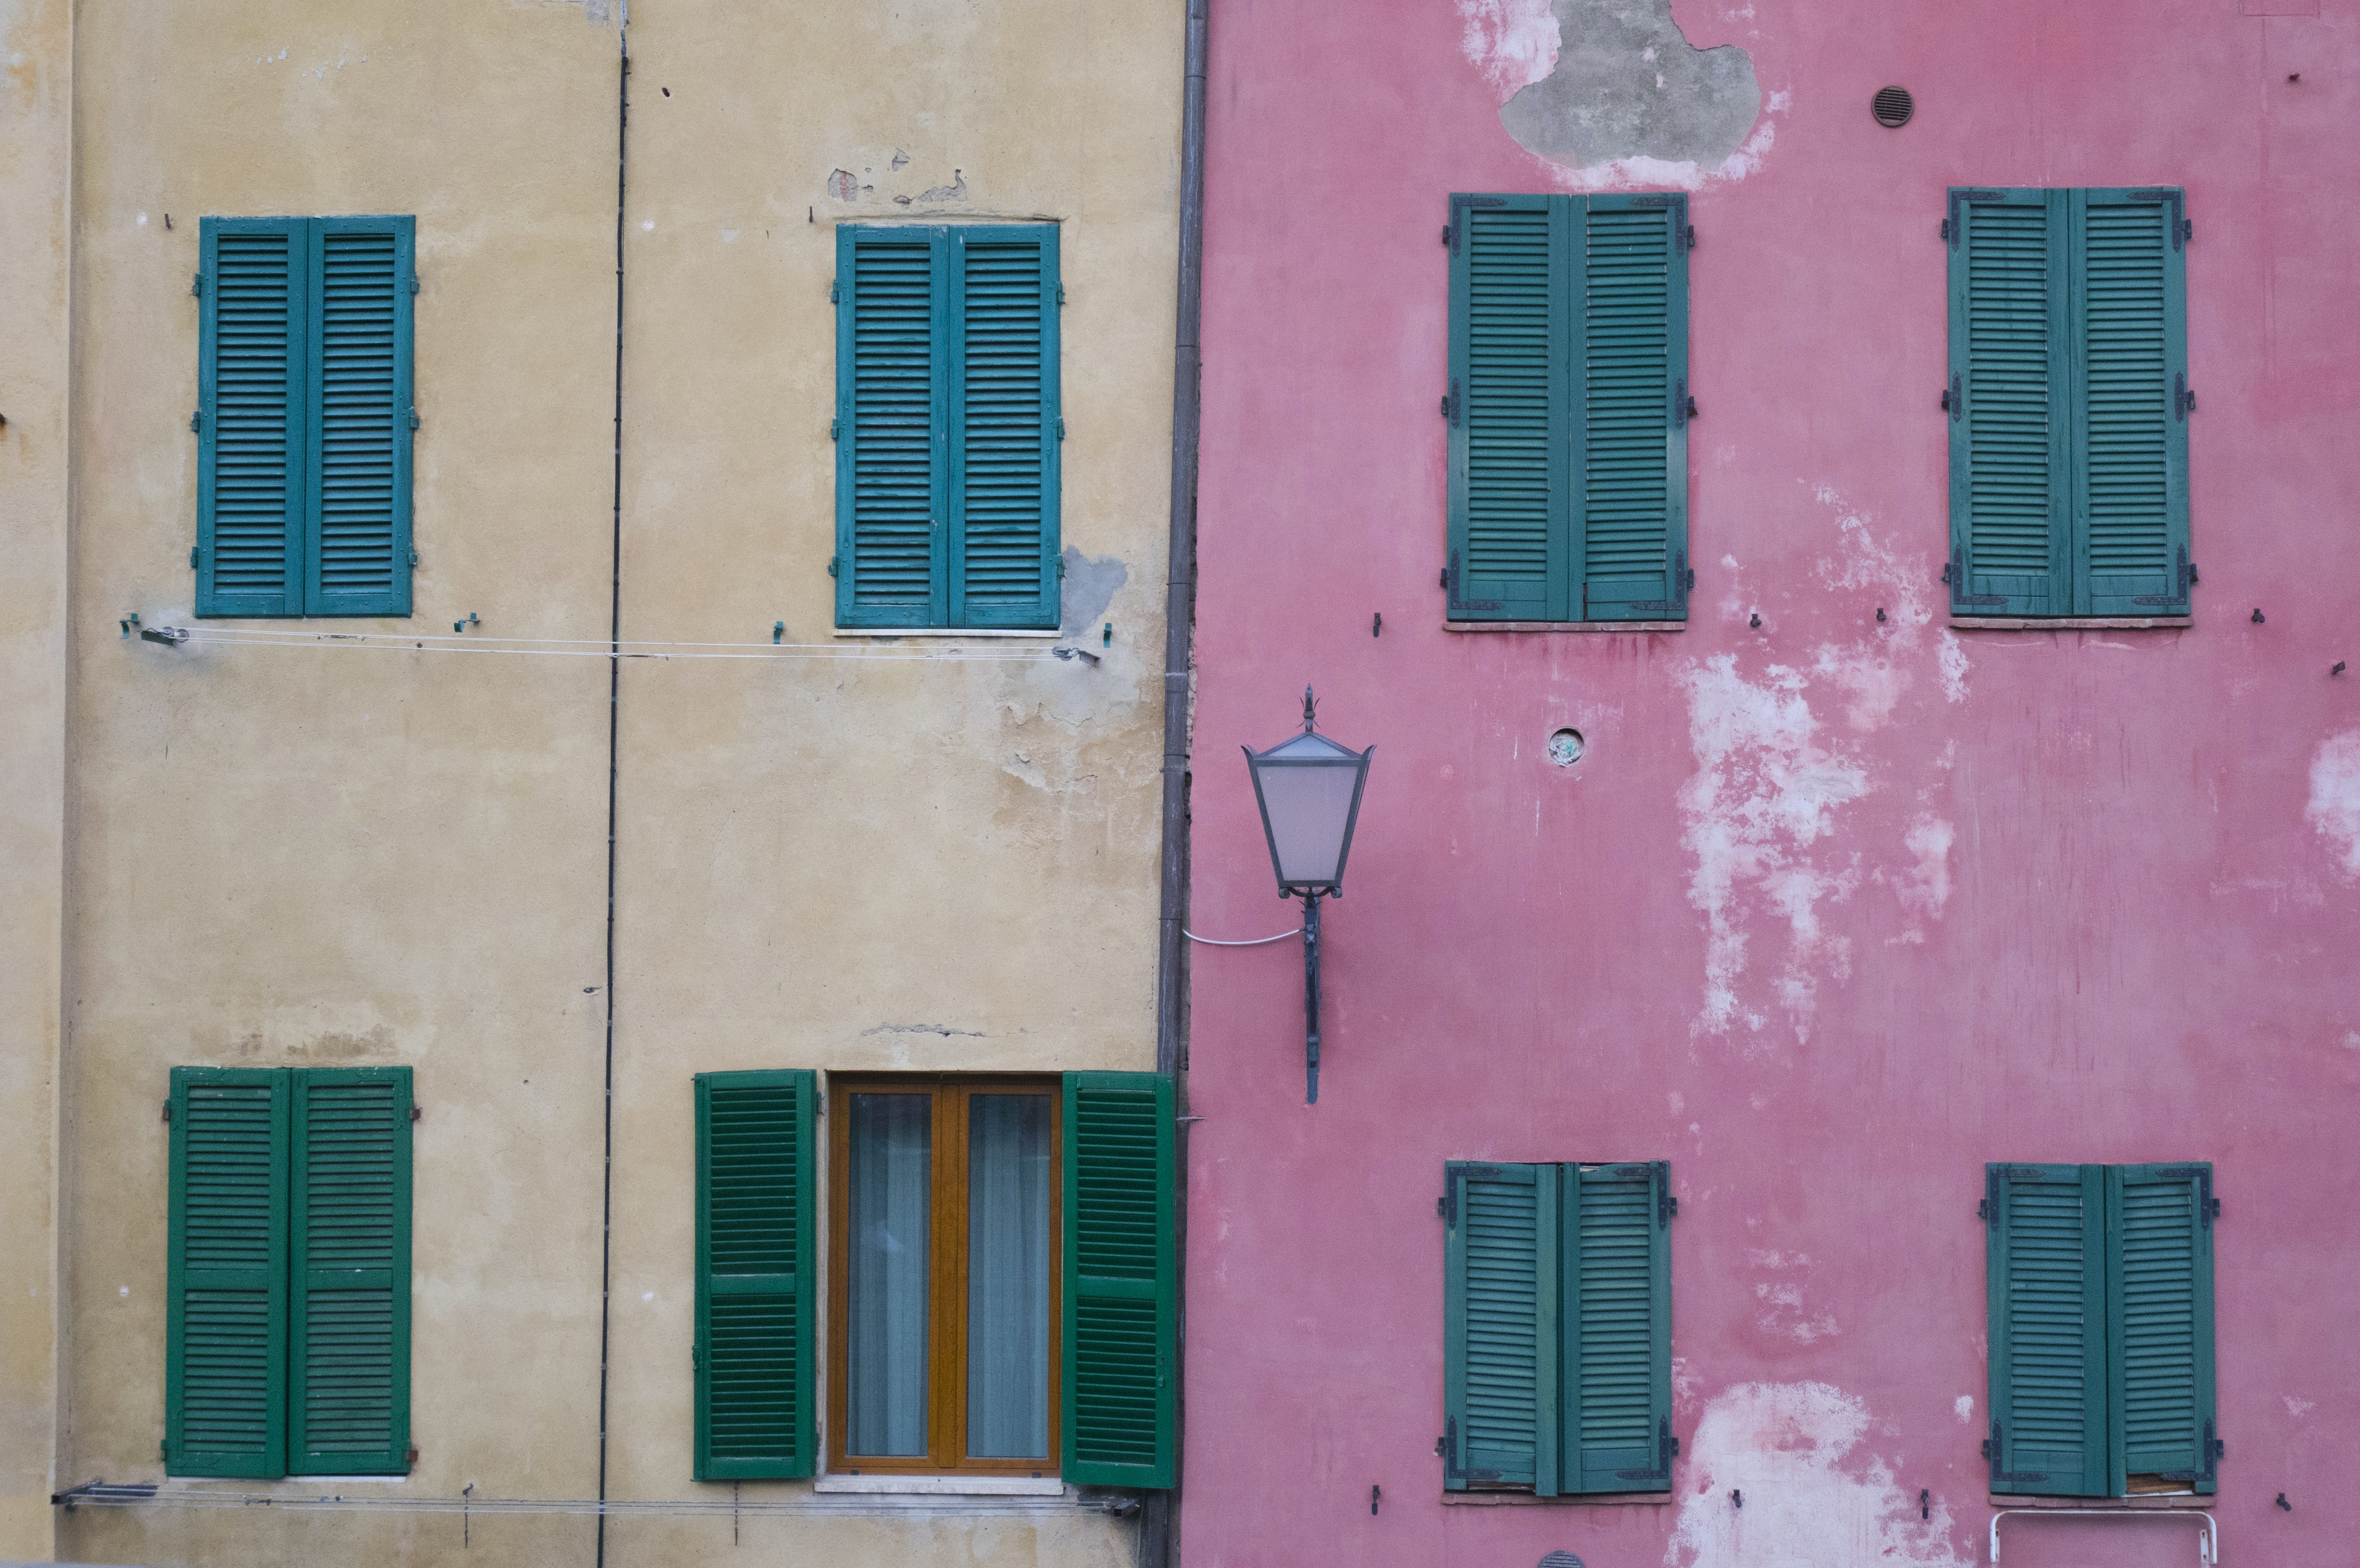 An old building with beige and pink walls with green window shutters in Siena.